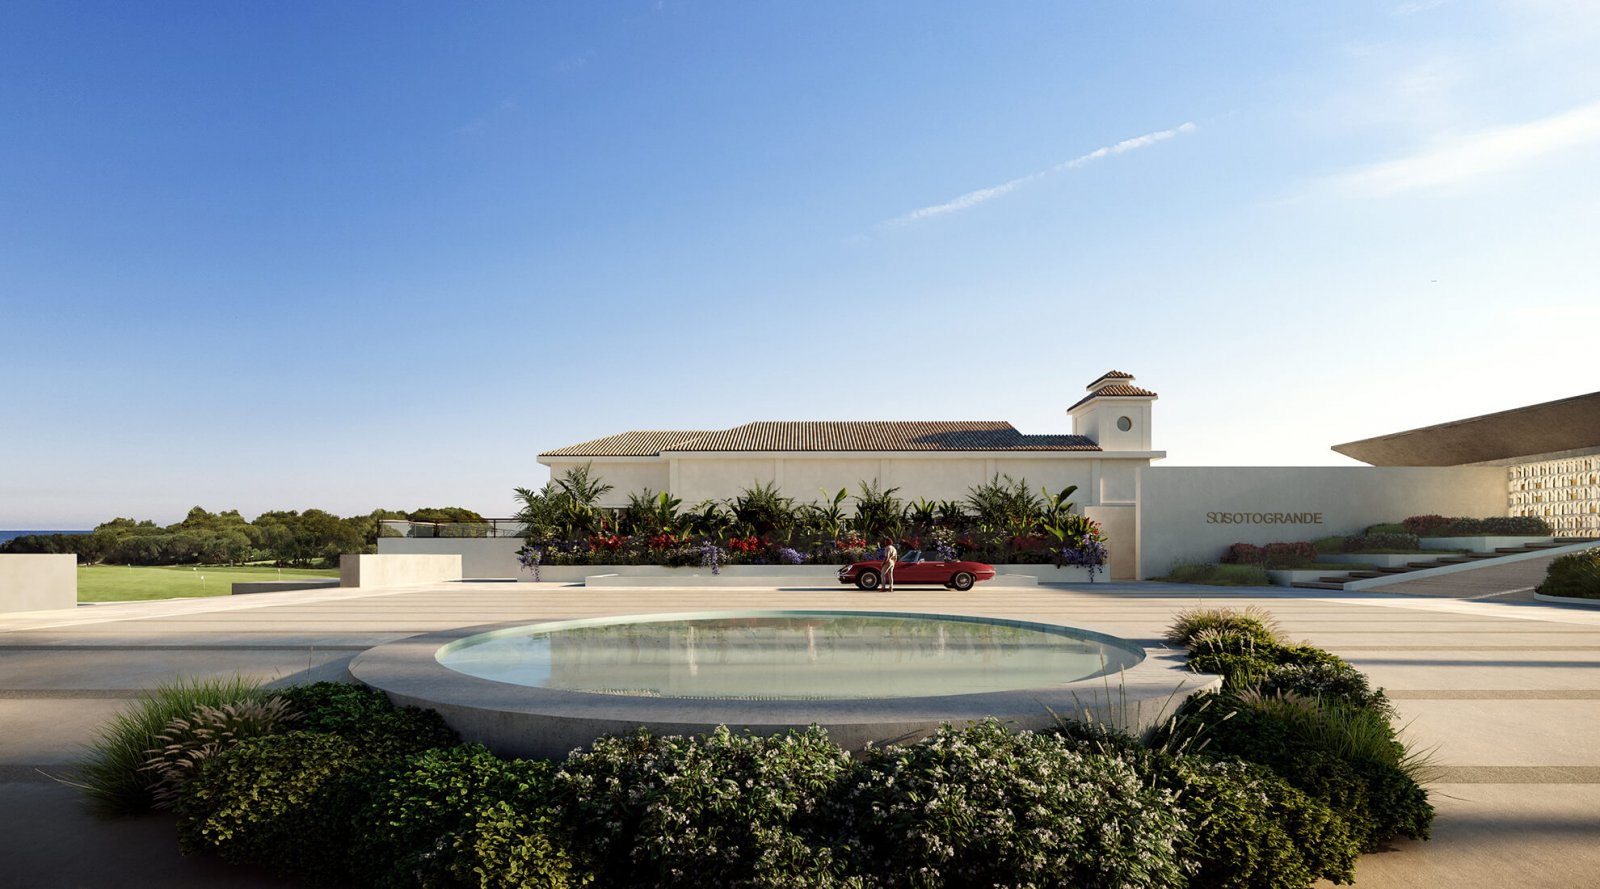 View of the pool and facade of the Sotogrande